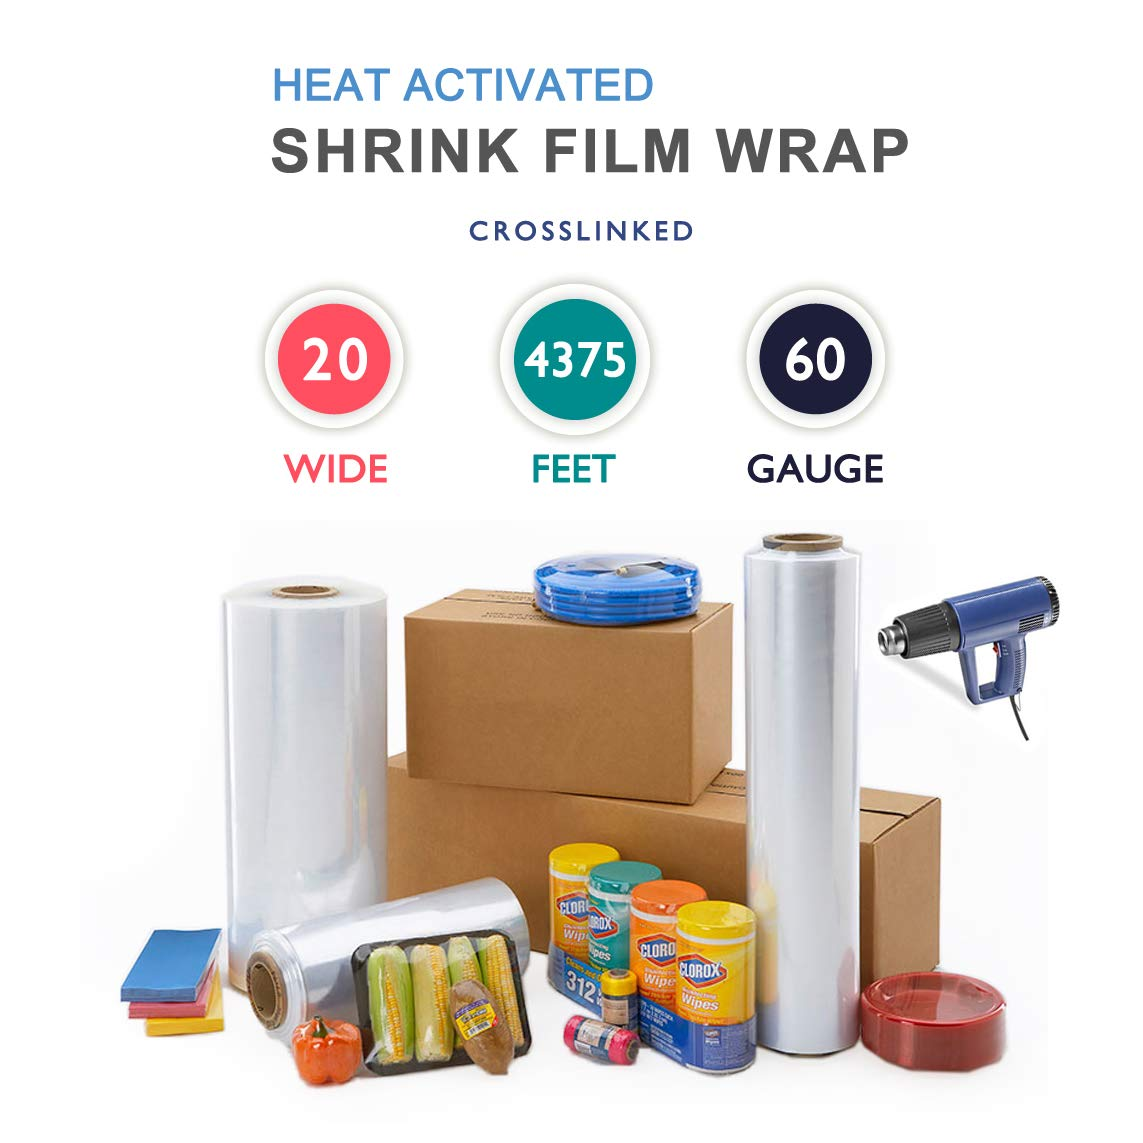 20'' x 4375 ft. Heat Shrink Film Wrap Strong Centerfold Polyolefin 60 Gauge Cross-Linked Heat Activated Shrink Wrap, 1 Roll